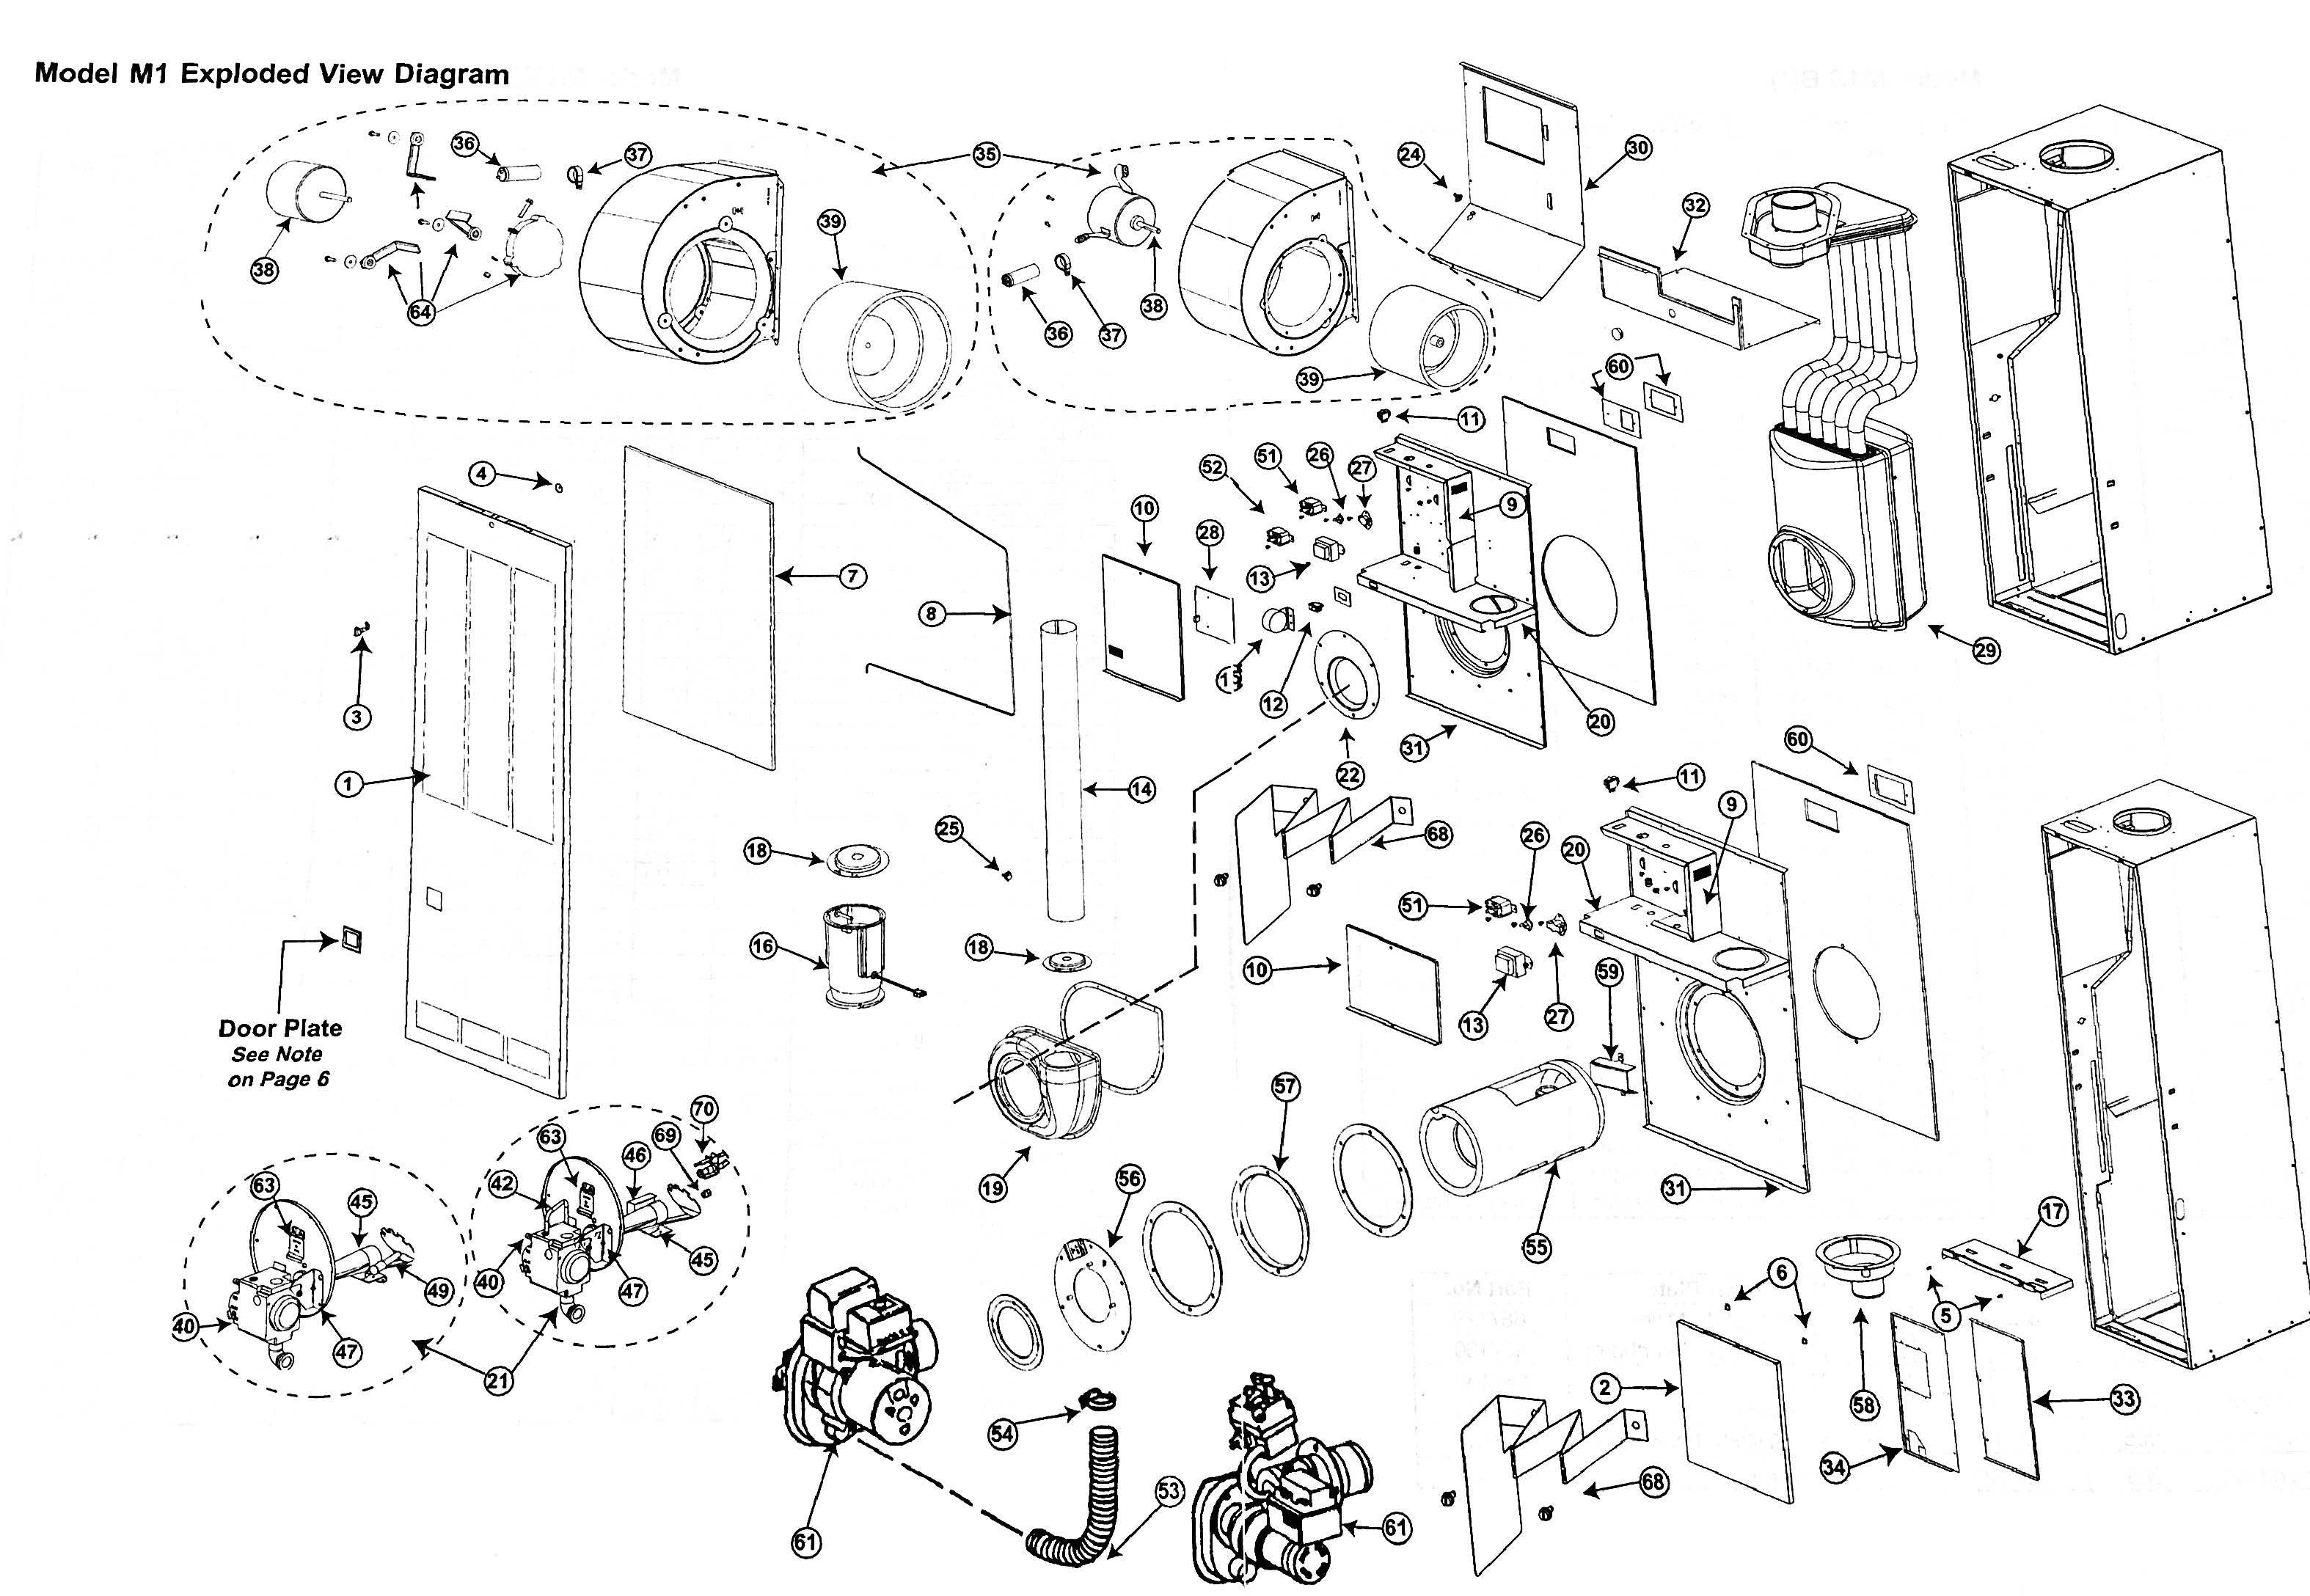 Suburban Camper Furnace Parts Sf 35 Wiring Diagram Introduction To Electrical 3149x2176